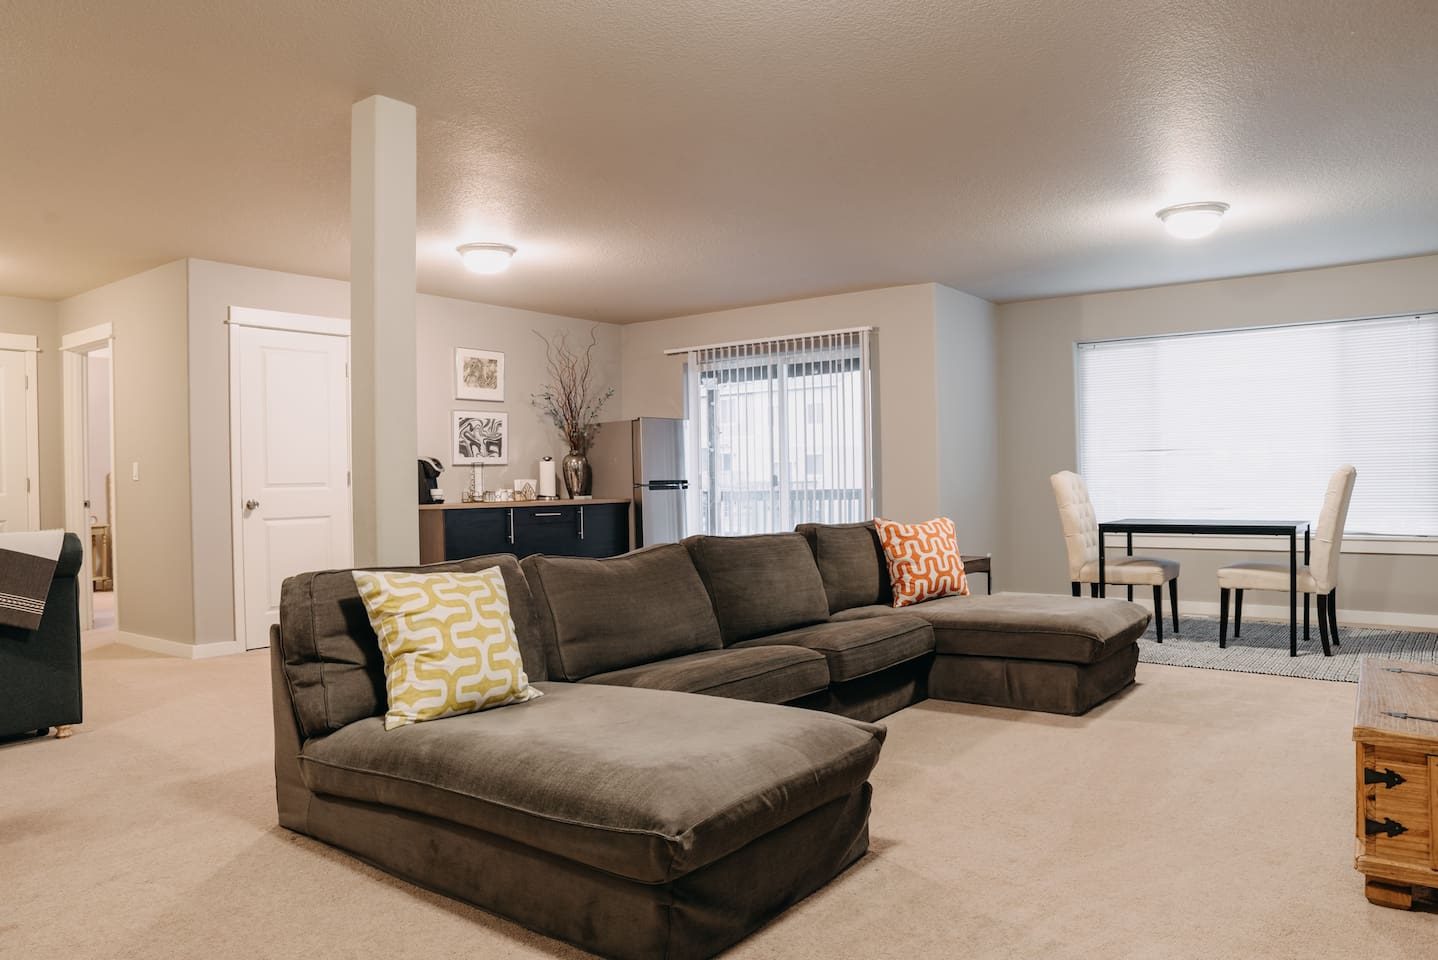 Full basement apartment with separate entrance.